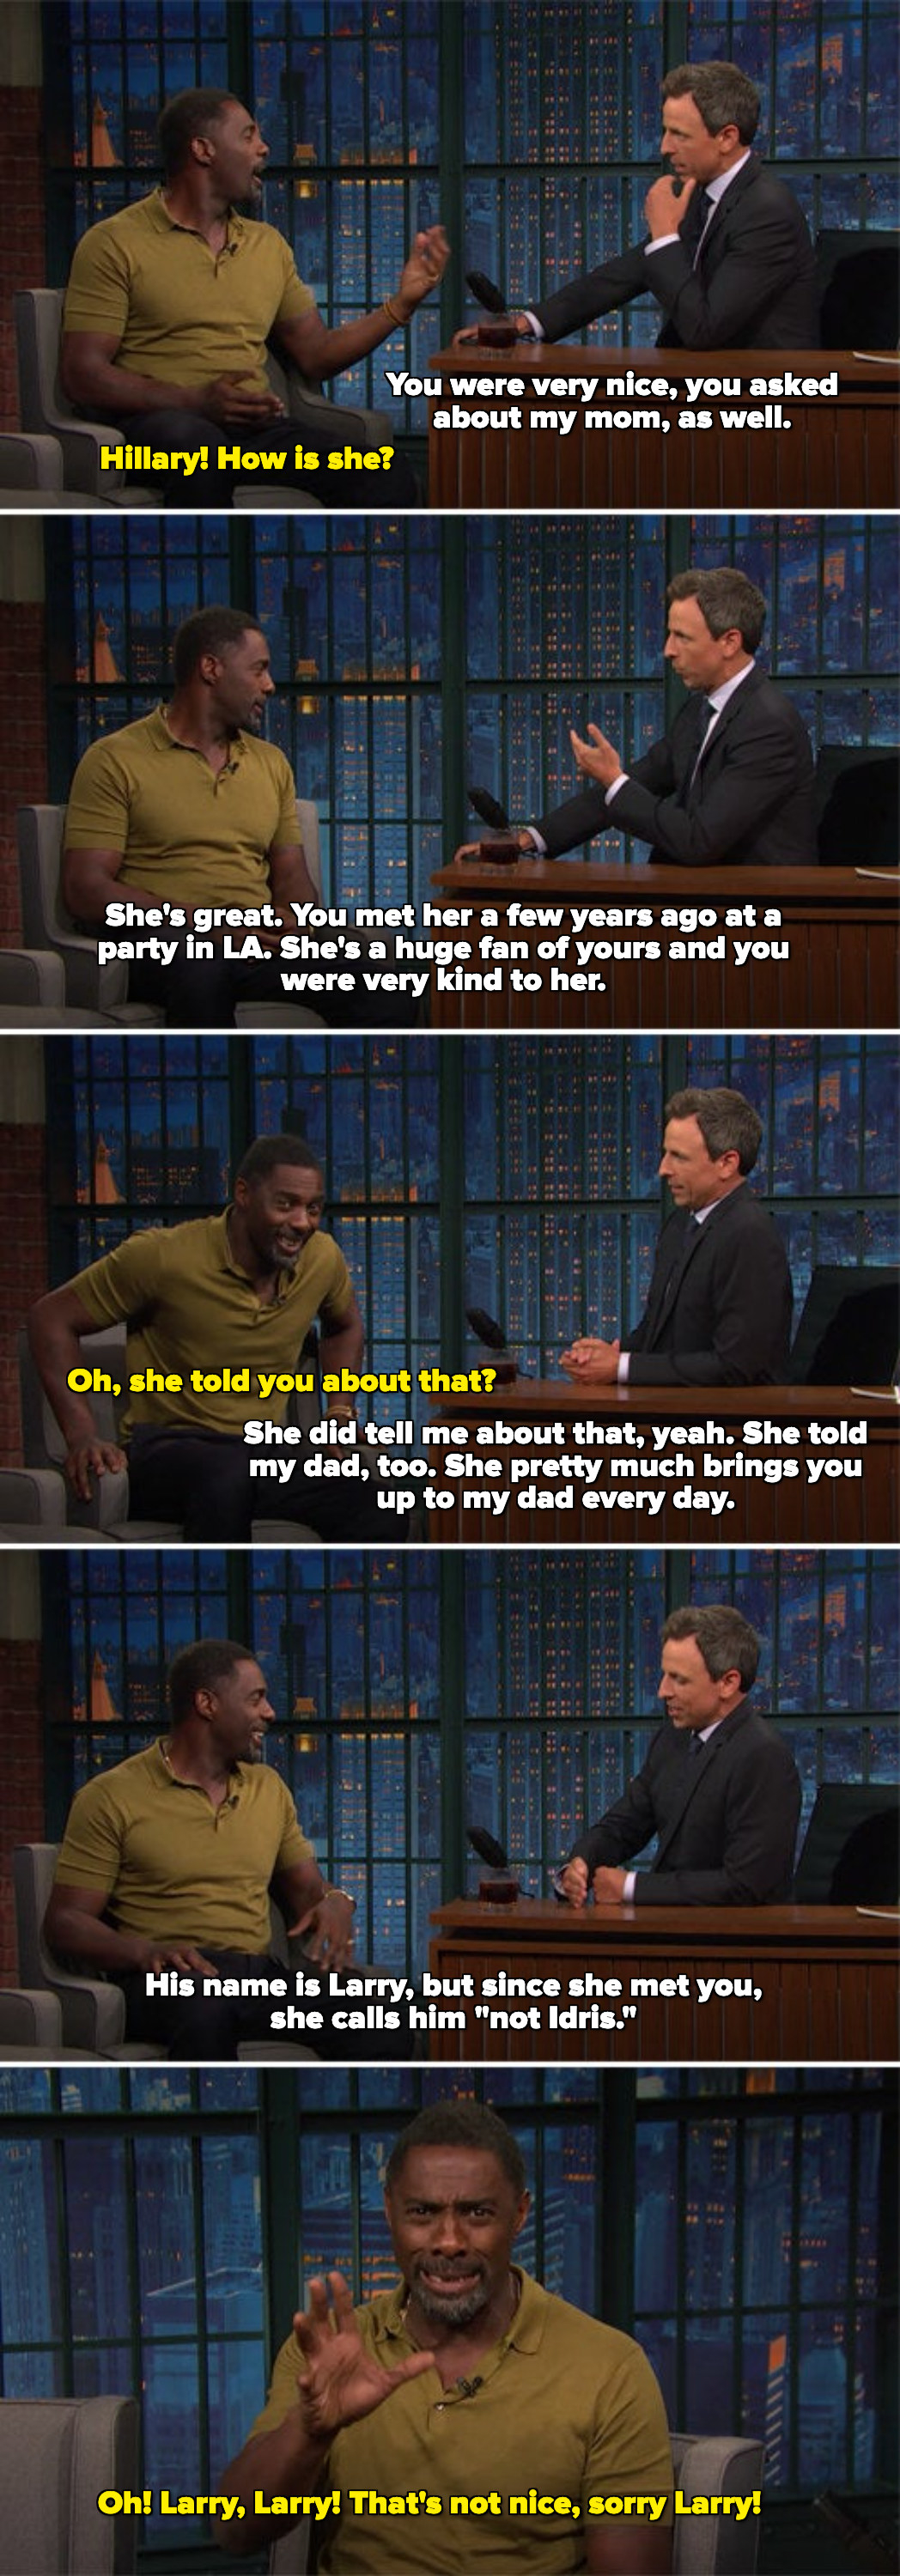 """Seth Meyers saying Idris met his mom, she brings it up every day, and calls his dad """"not Idris."""" Idris awkwardly waving and saying sorry to Seth's dad Larry"""